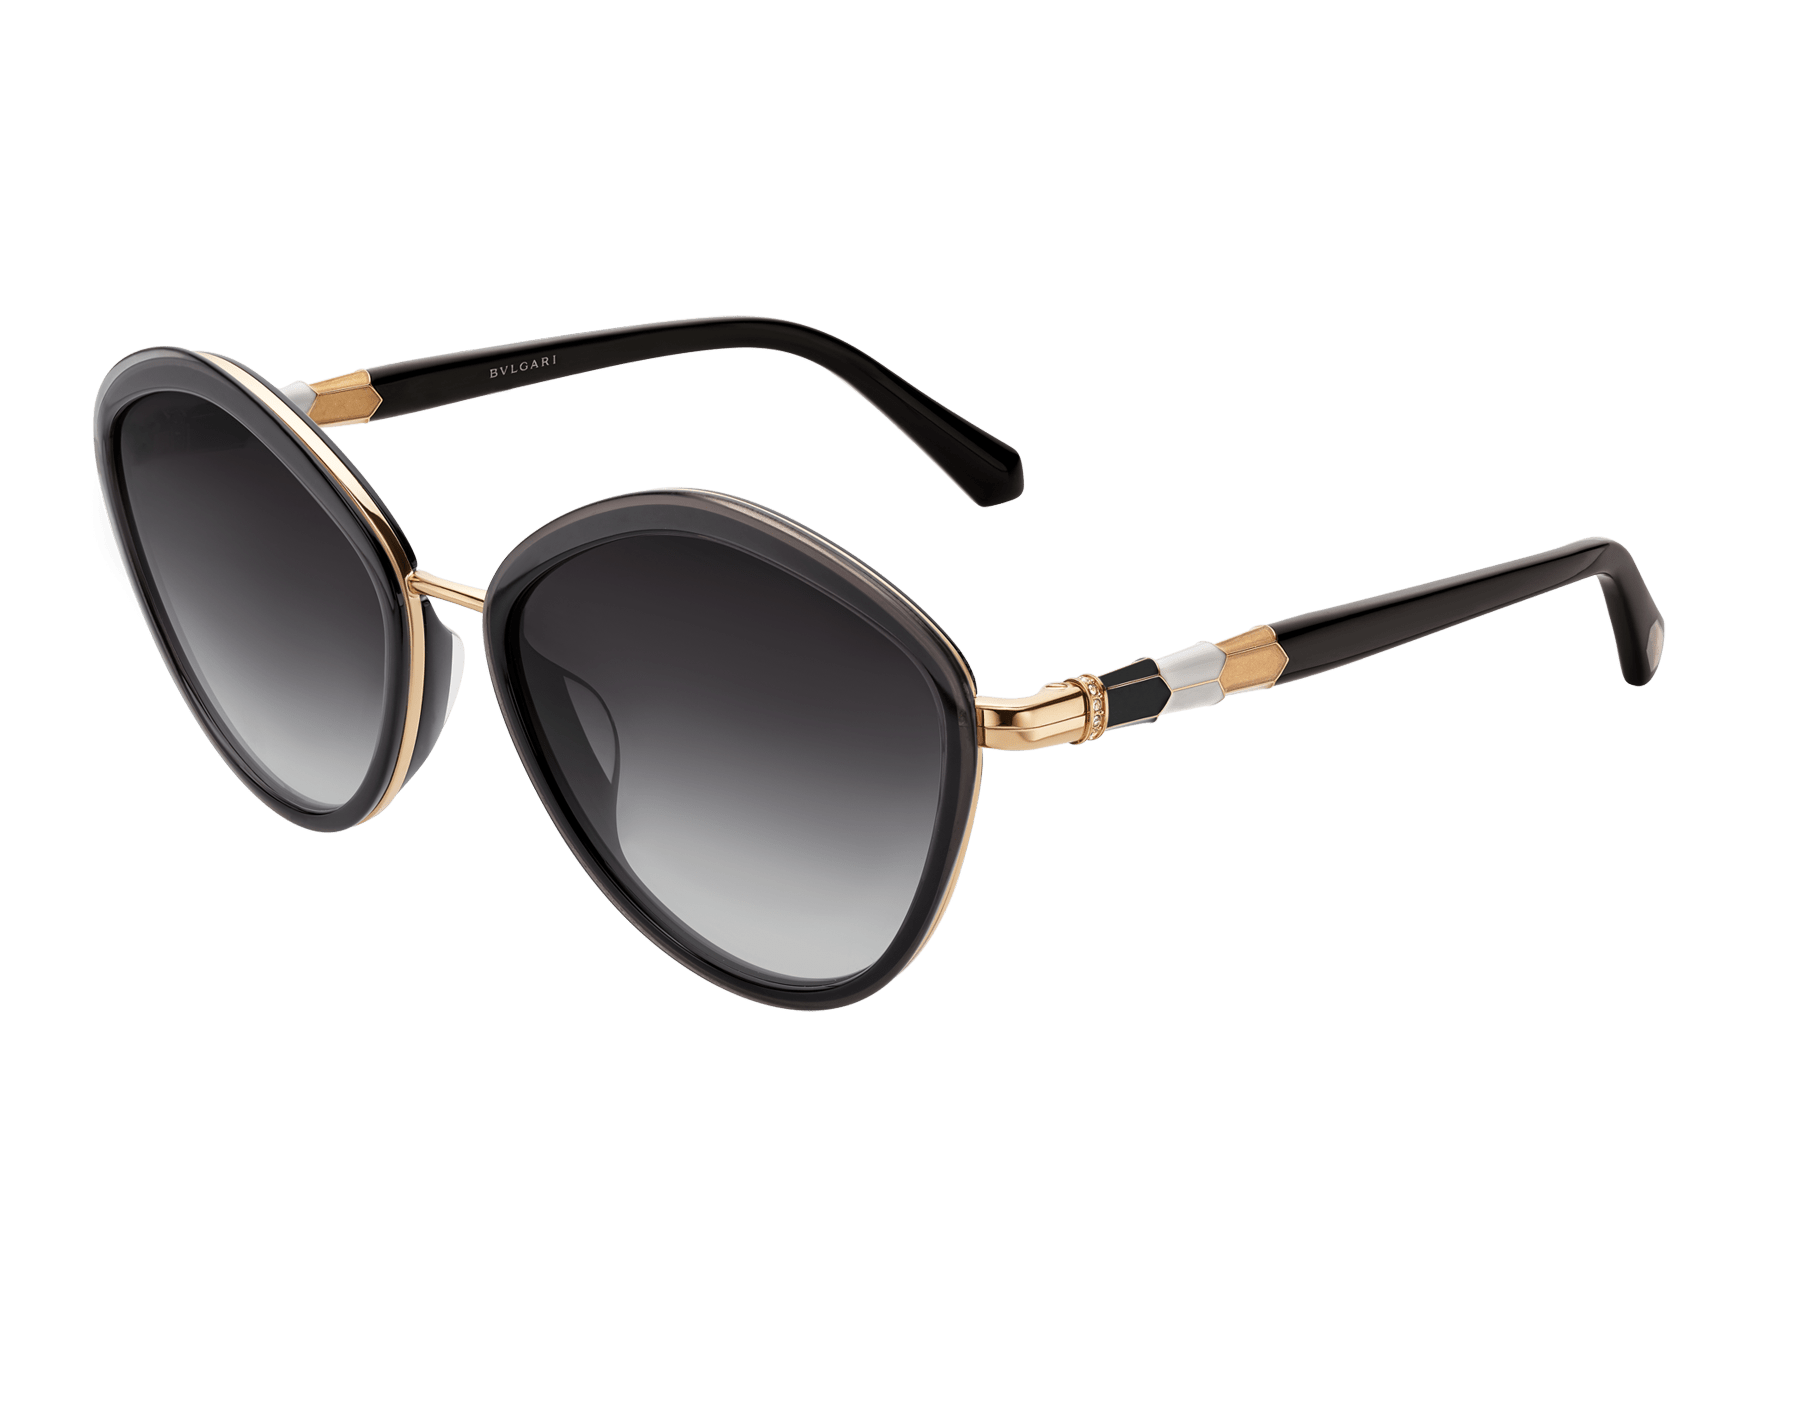 Bulgari Serpenti rounded metal sunglasses. 903988 image 1